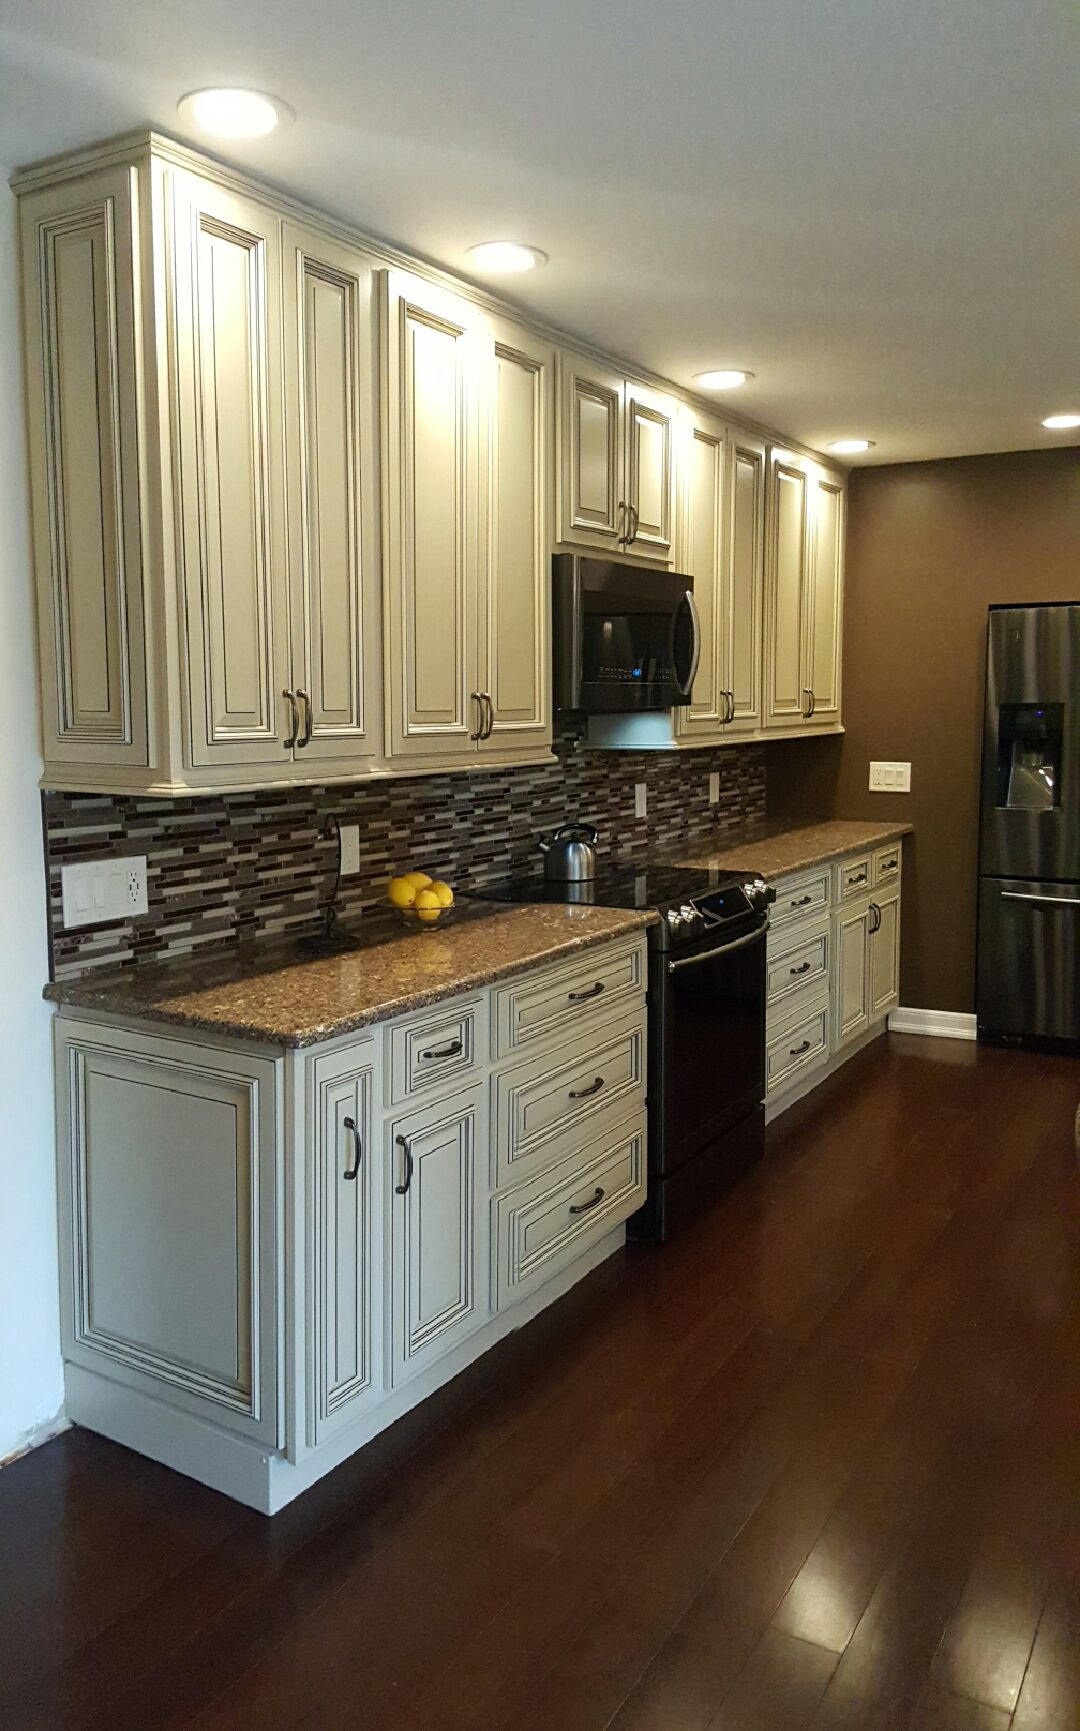 Kitchen Renovation By Susan M Of Rochester Ny Replaced Them With Bargain Outlet Cupboards Cabinet Hardware Soft C Kitchen Renovation Kitchen Plans Kitchen